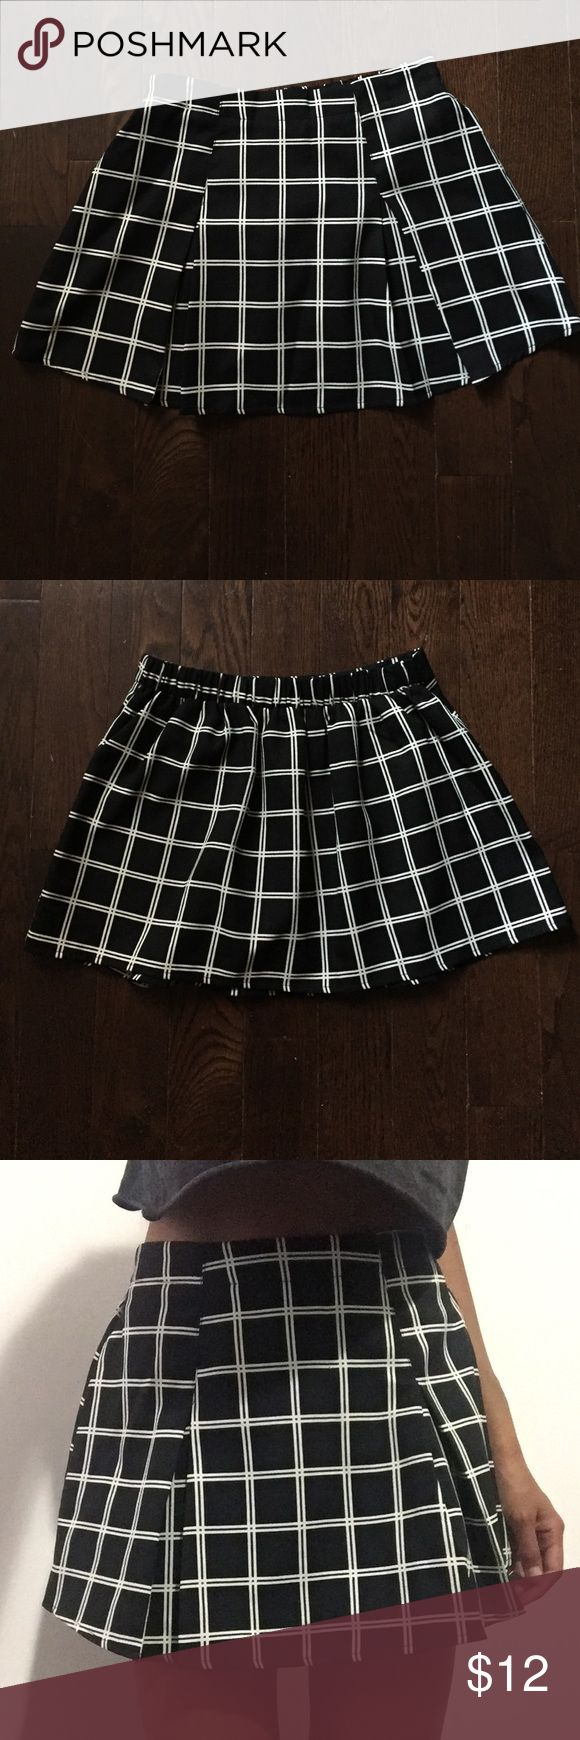 Black and white plaid pleated skirt Box pleated mink skirt with gathering at the back. Super cute schoolgirl style. Worn once. Forever 21 Skirts Mini